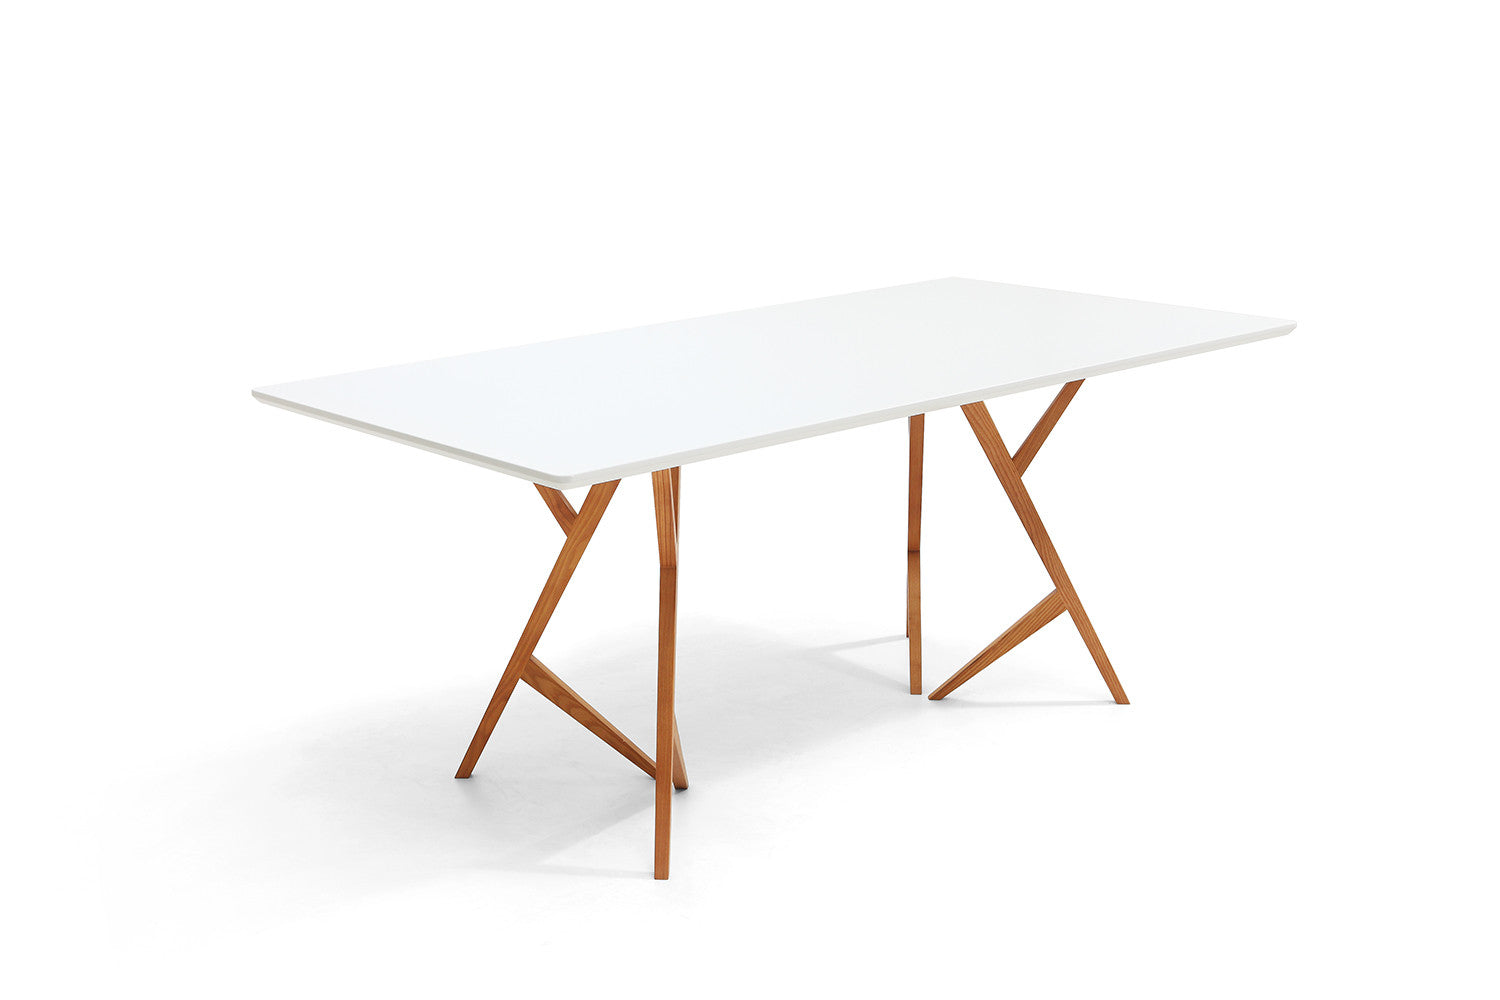 Table de salle manger design scandinave vispa dewarens for Table a salle a manger design